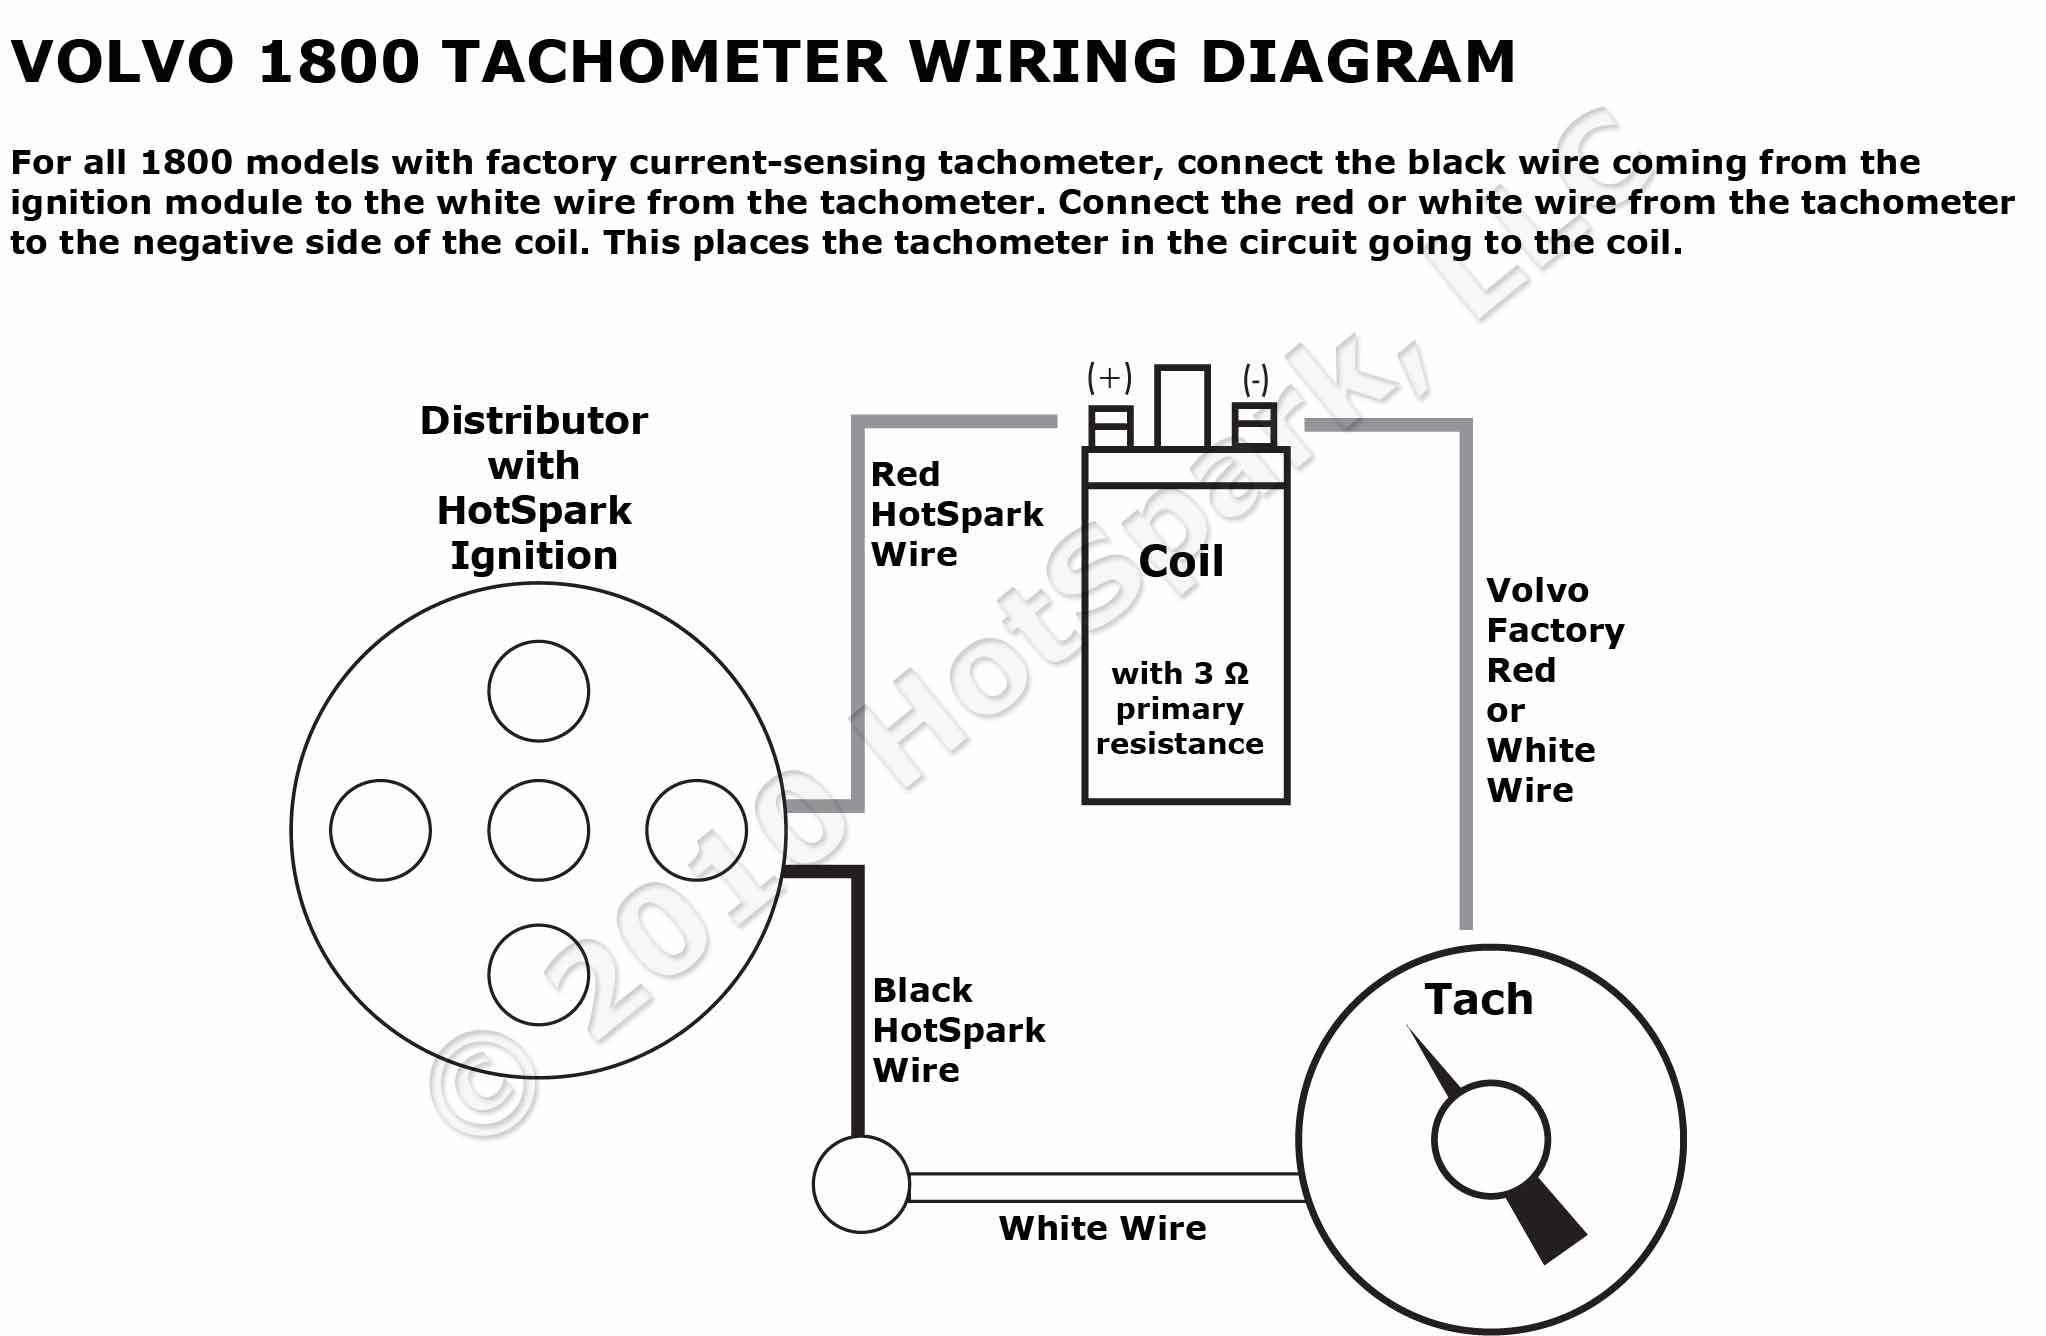 volvo 1800 tachometer wiring diagram with hotspark ignition how to install tachometer to distributor at Wiring Diagram Tachometer